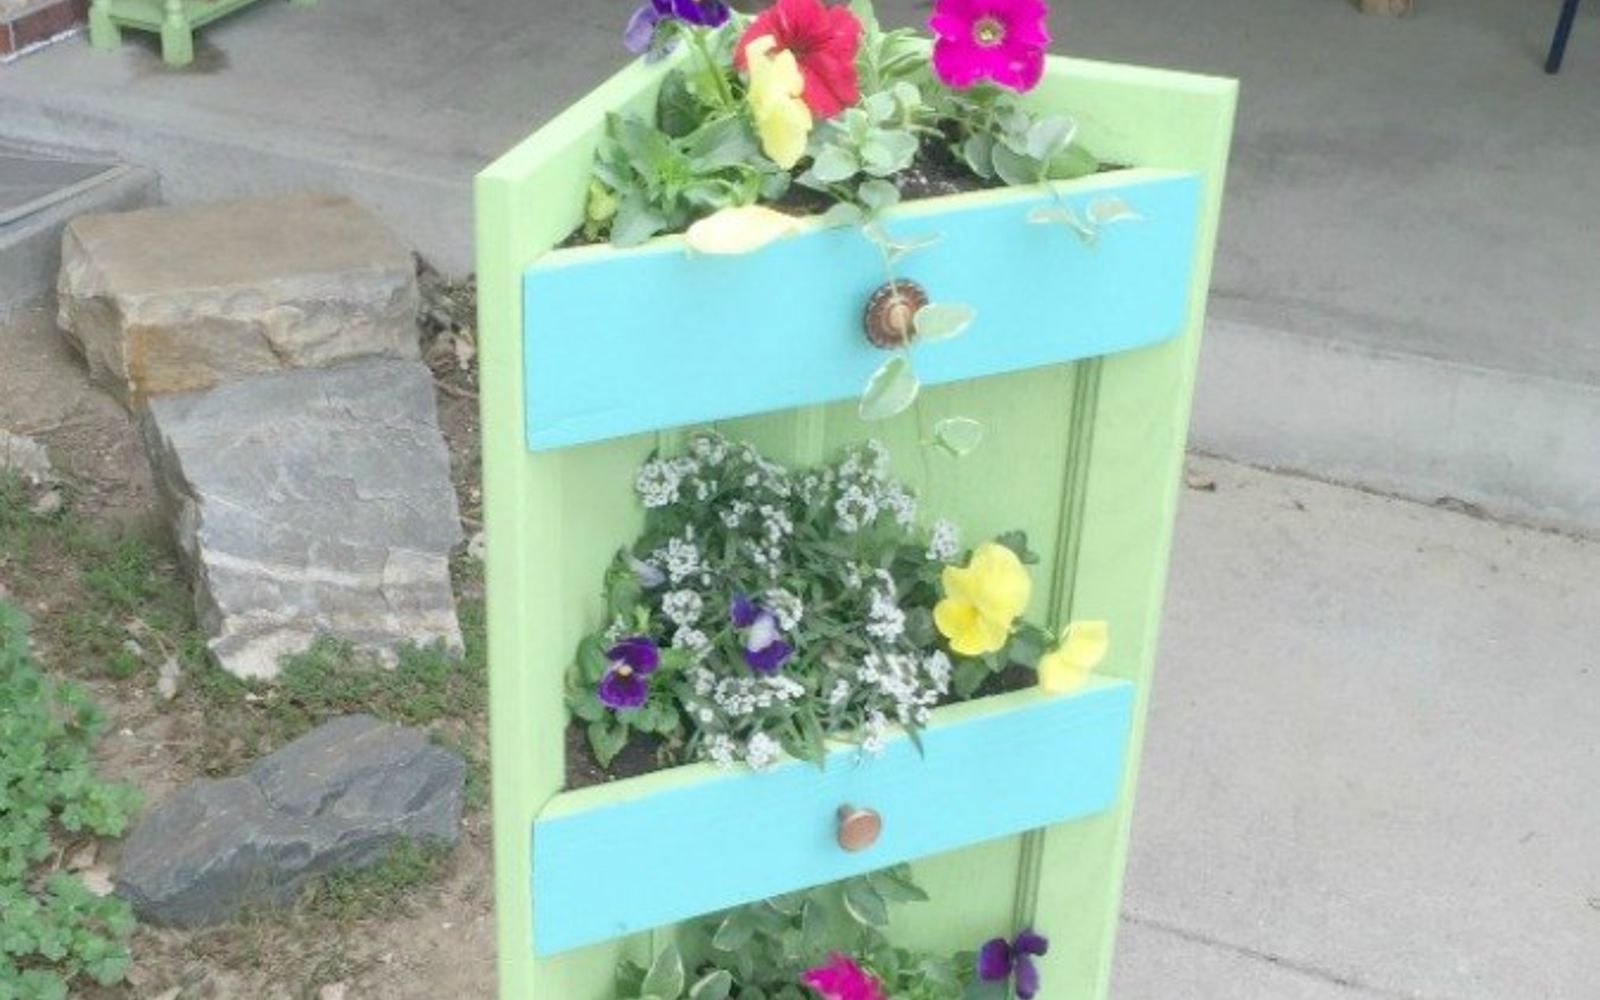 s rip off your cabinet doors for these brilliant upcycling ideas, Turn it into a three tiered planter